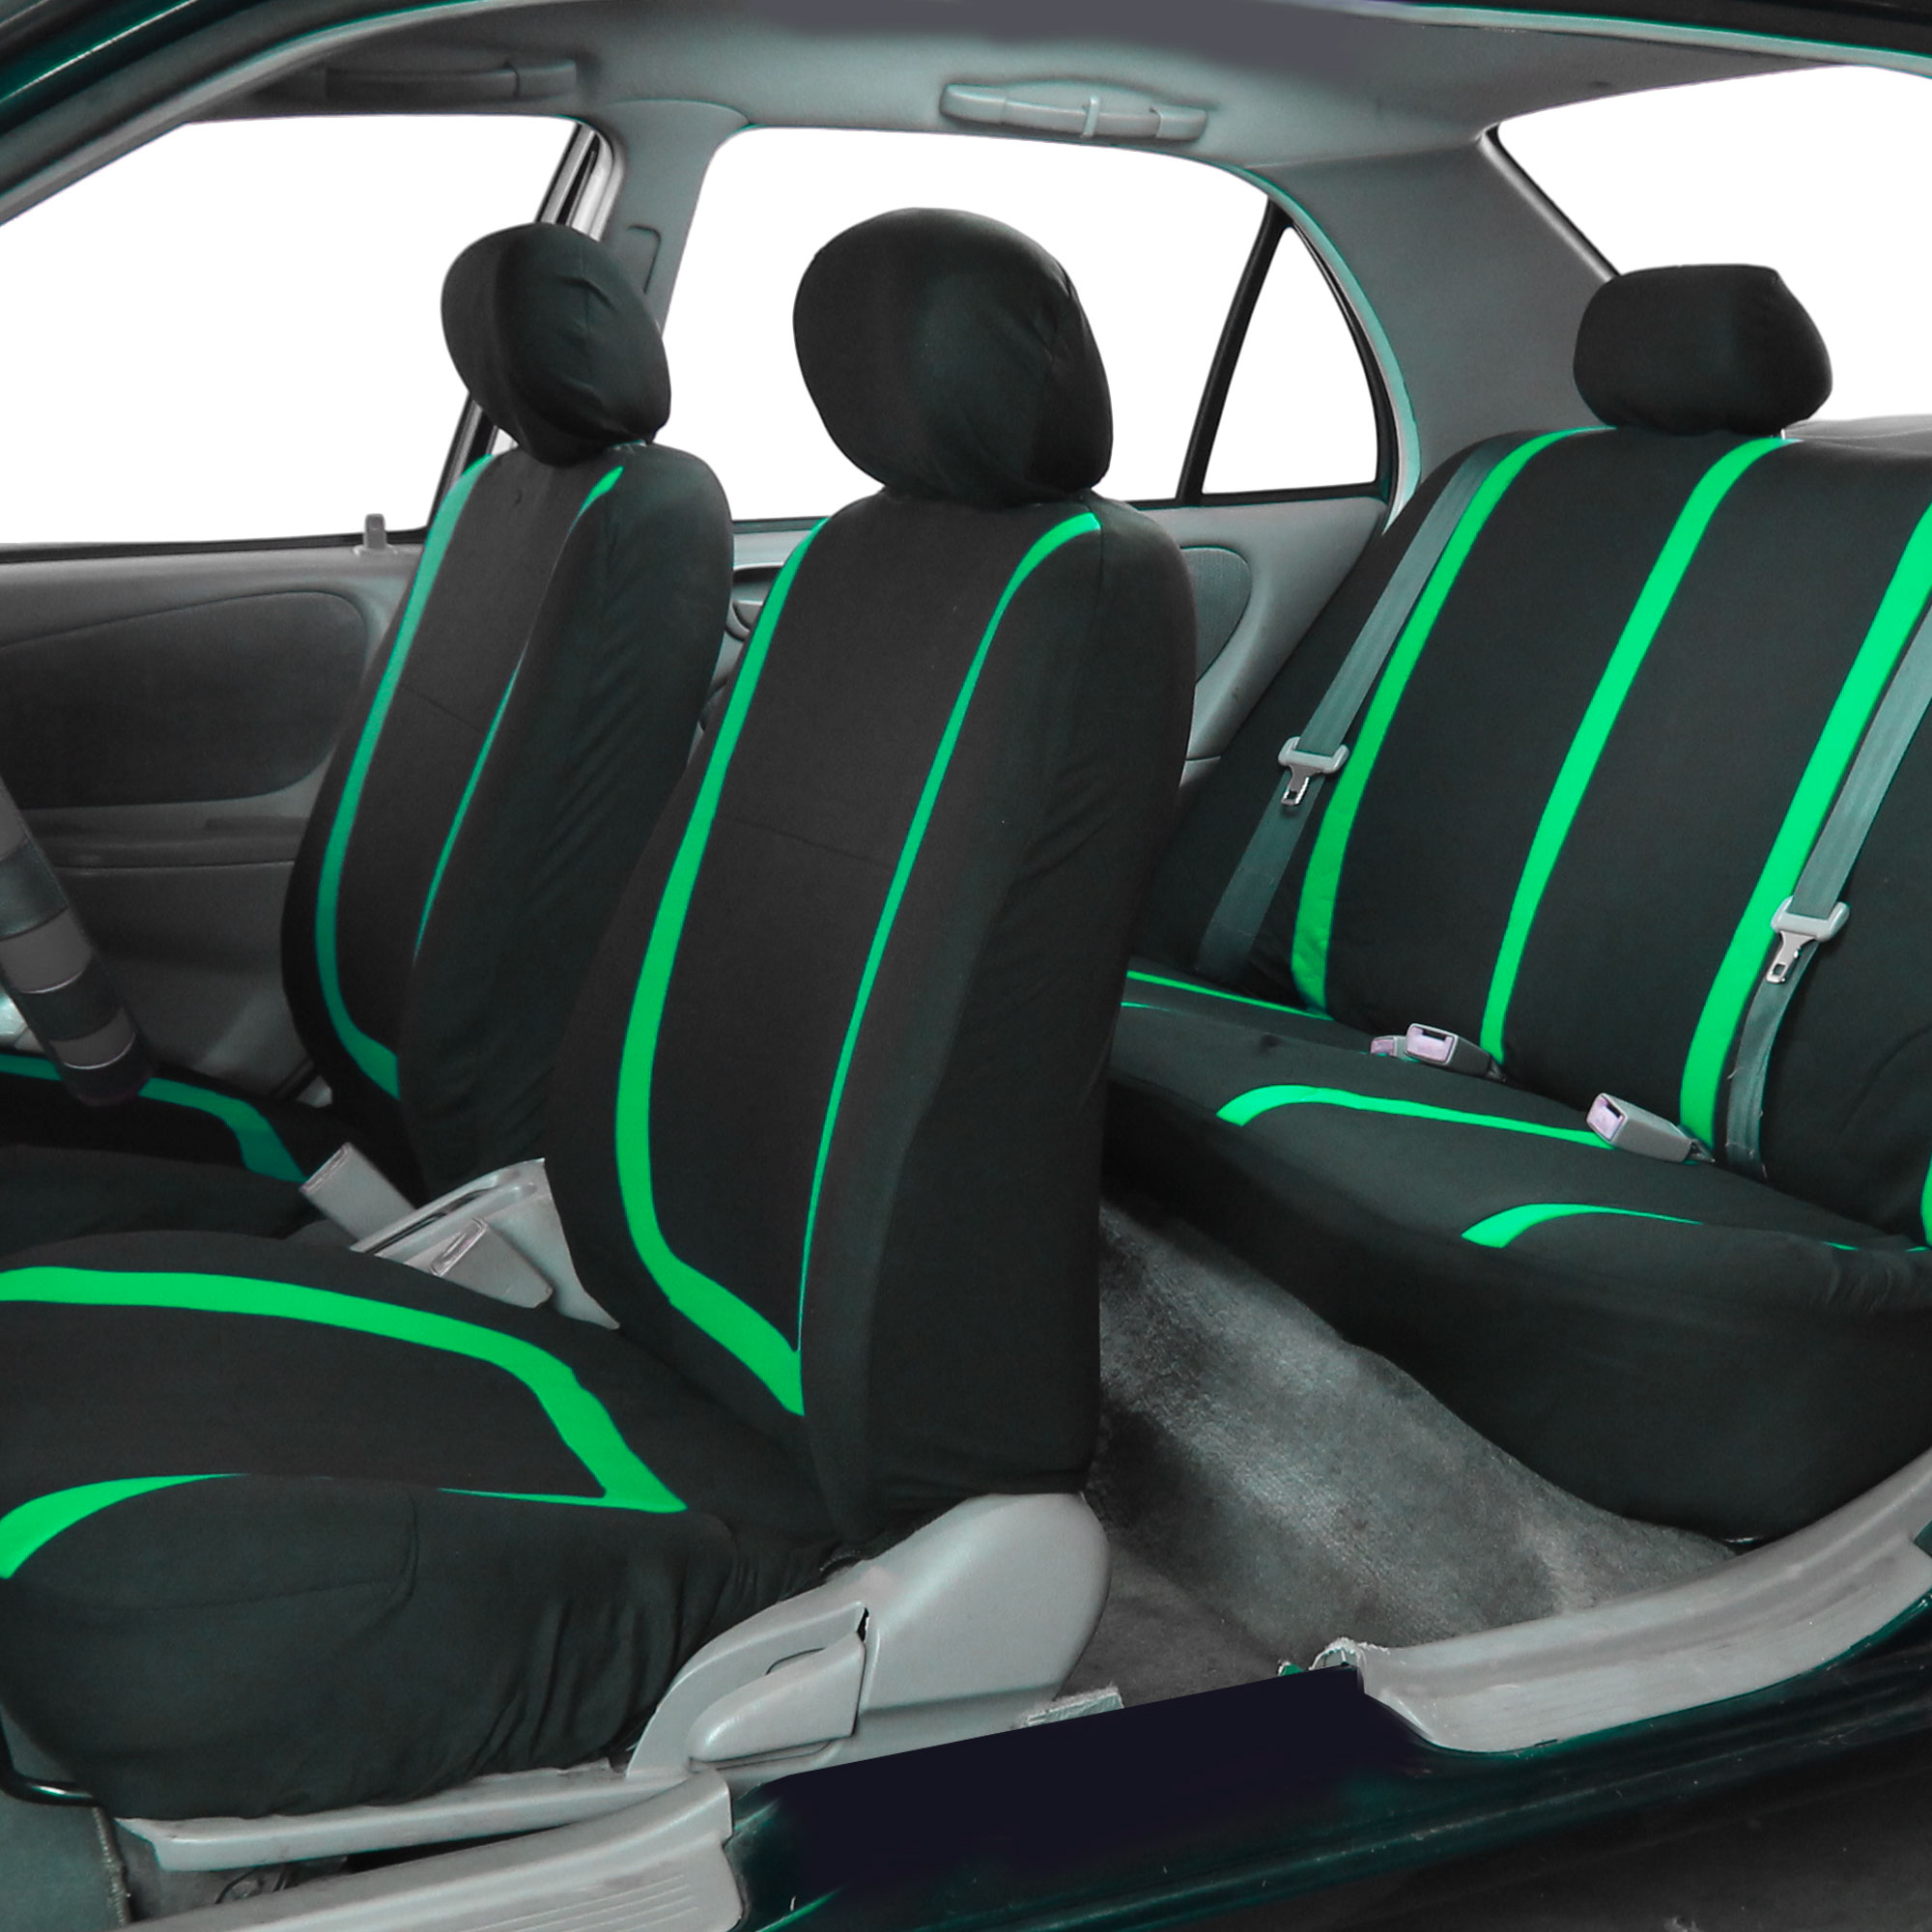 auto seat covers for car sedan truck van universal seat covers 12 colors ebay. Black Bedroom Furniture Sets. Home Design Ideas